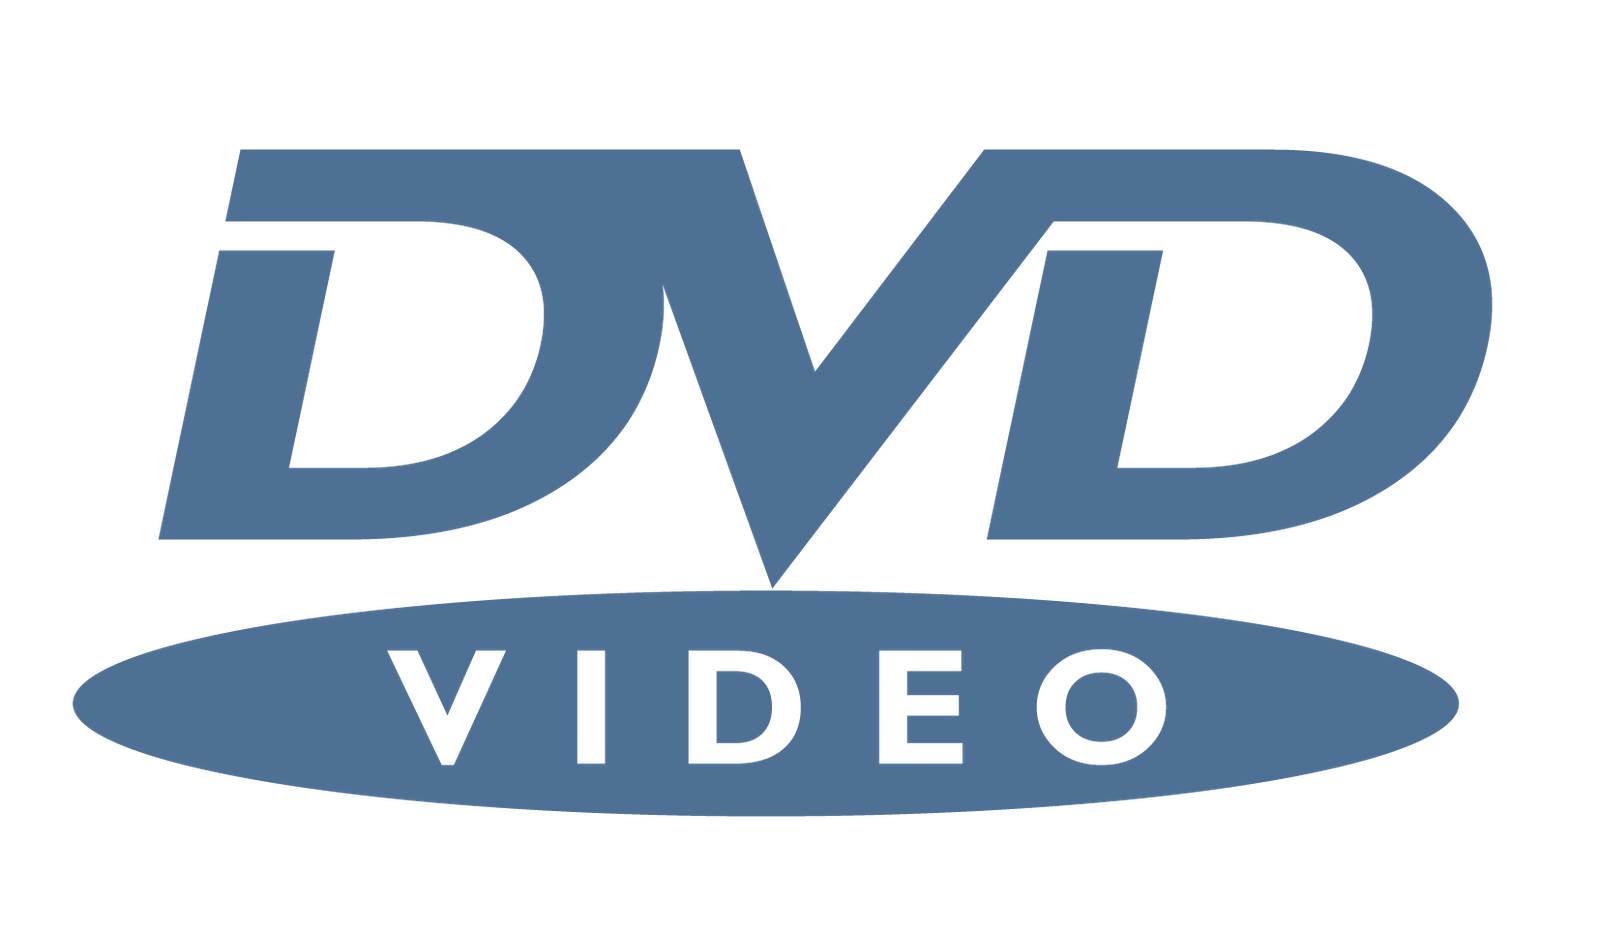 Free png to vector. Dvd logo transparent pictures